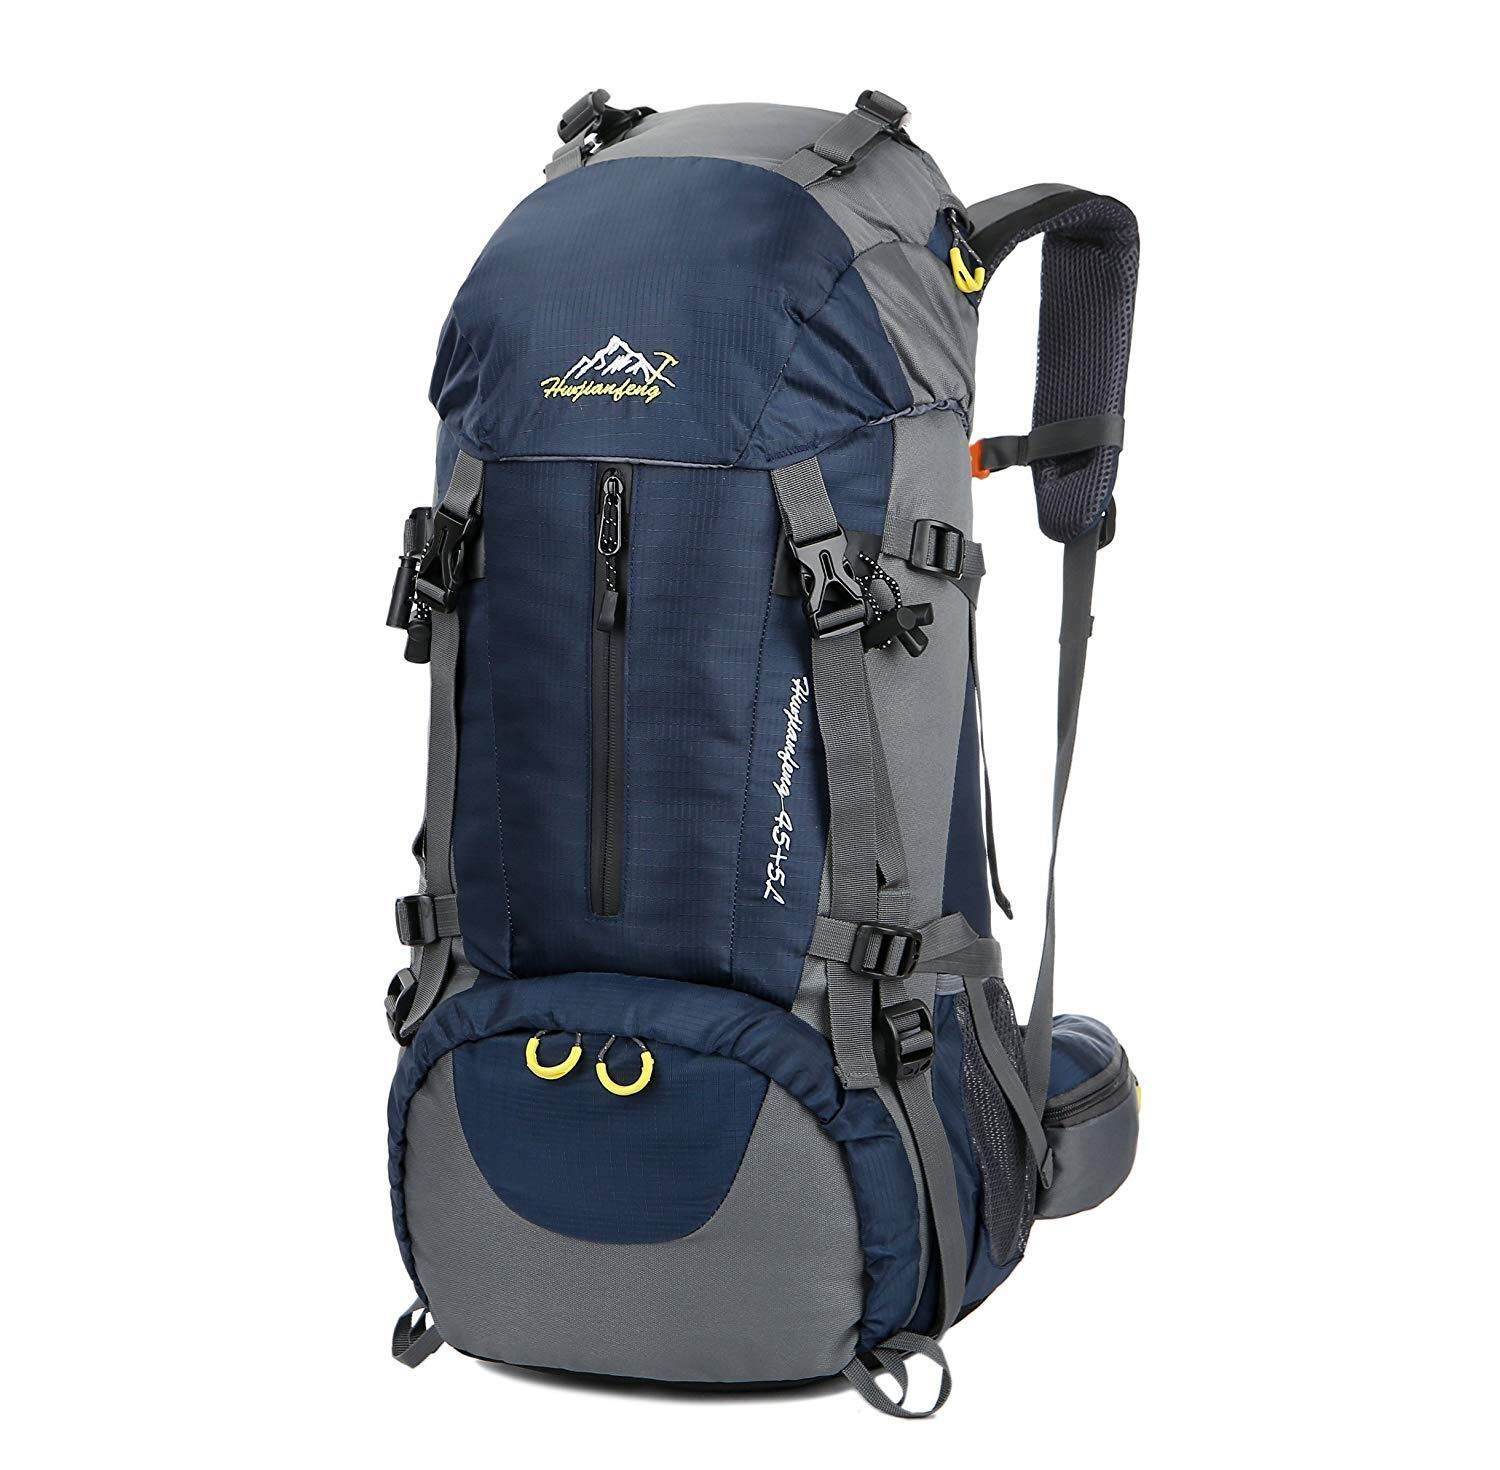 Esup Hiking Backpack, 50L Multipurpose Mountaineering Backpack with rain Cover 45l+5l Travel Camping Backpack, Suitable for Climbing Skiing Outdoor Sport, (Blue-50L)